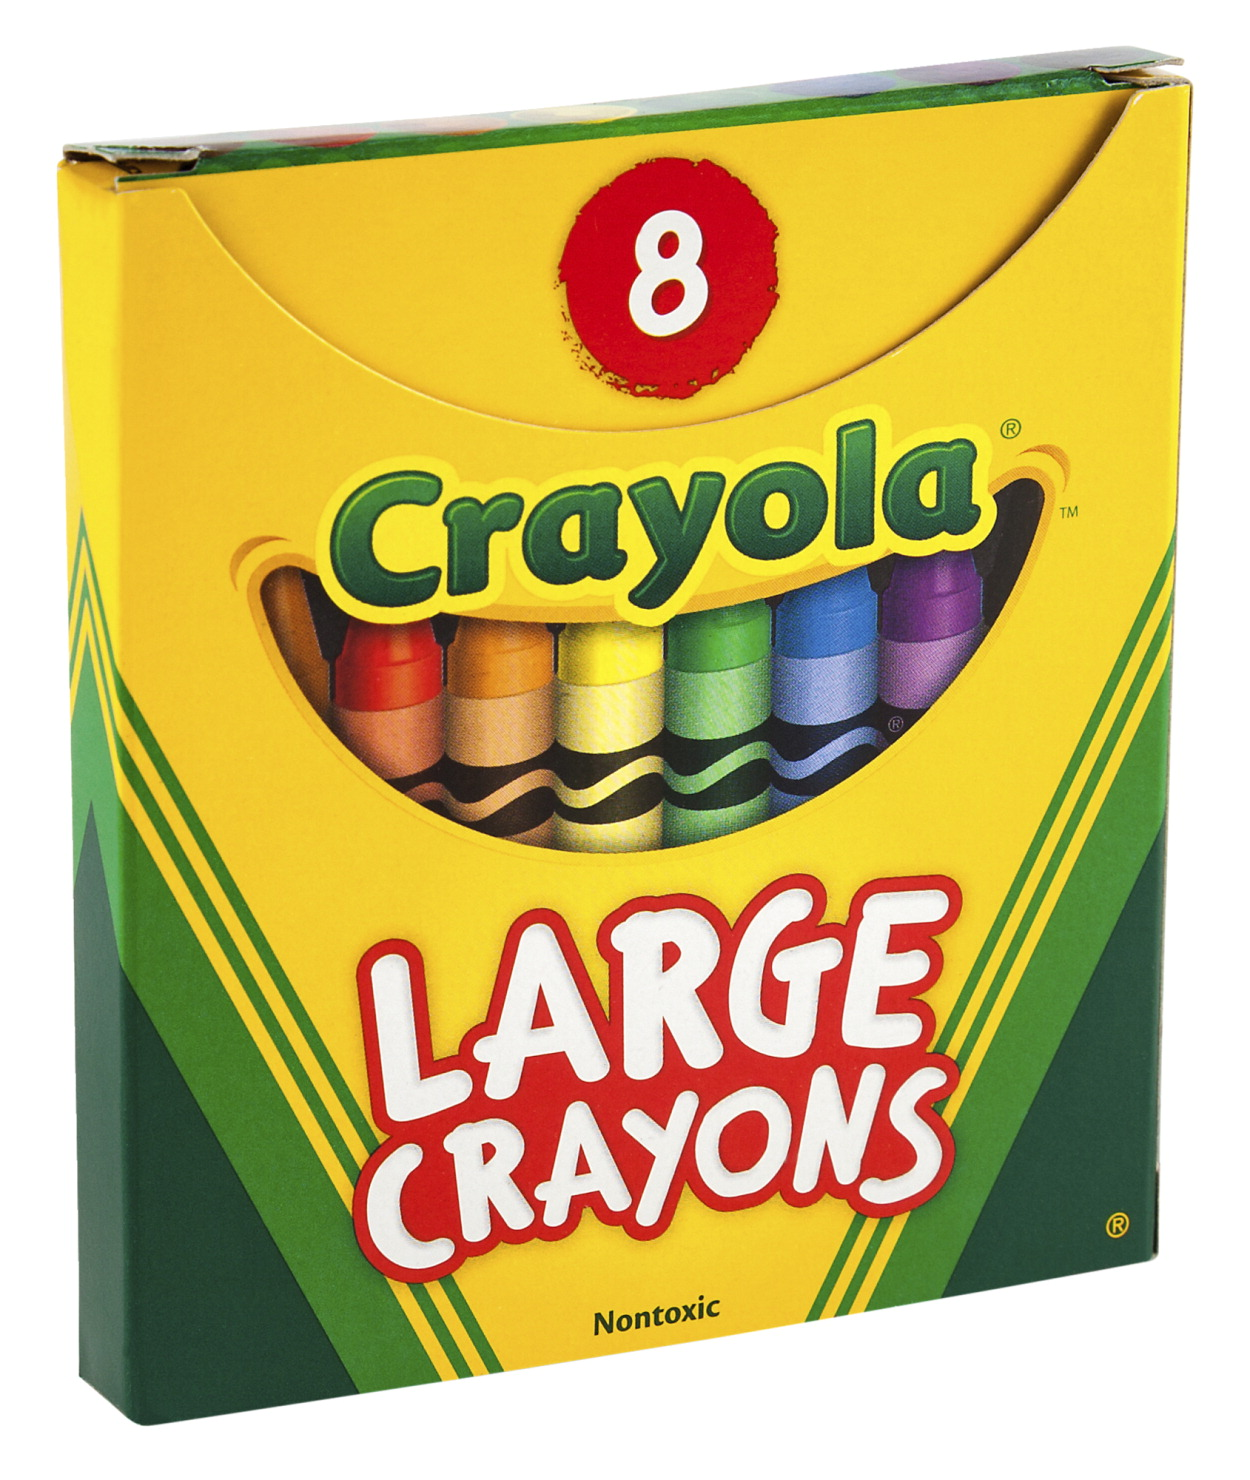 Crayola Large Non-Toxic Crayon in Tuck Box, 4 x 7/16 in, Assorted Colors, Set of 8